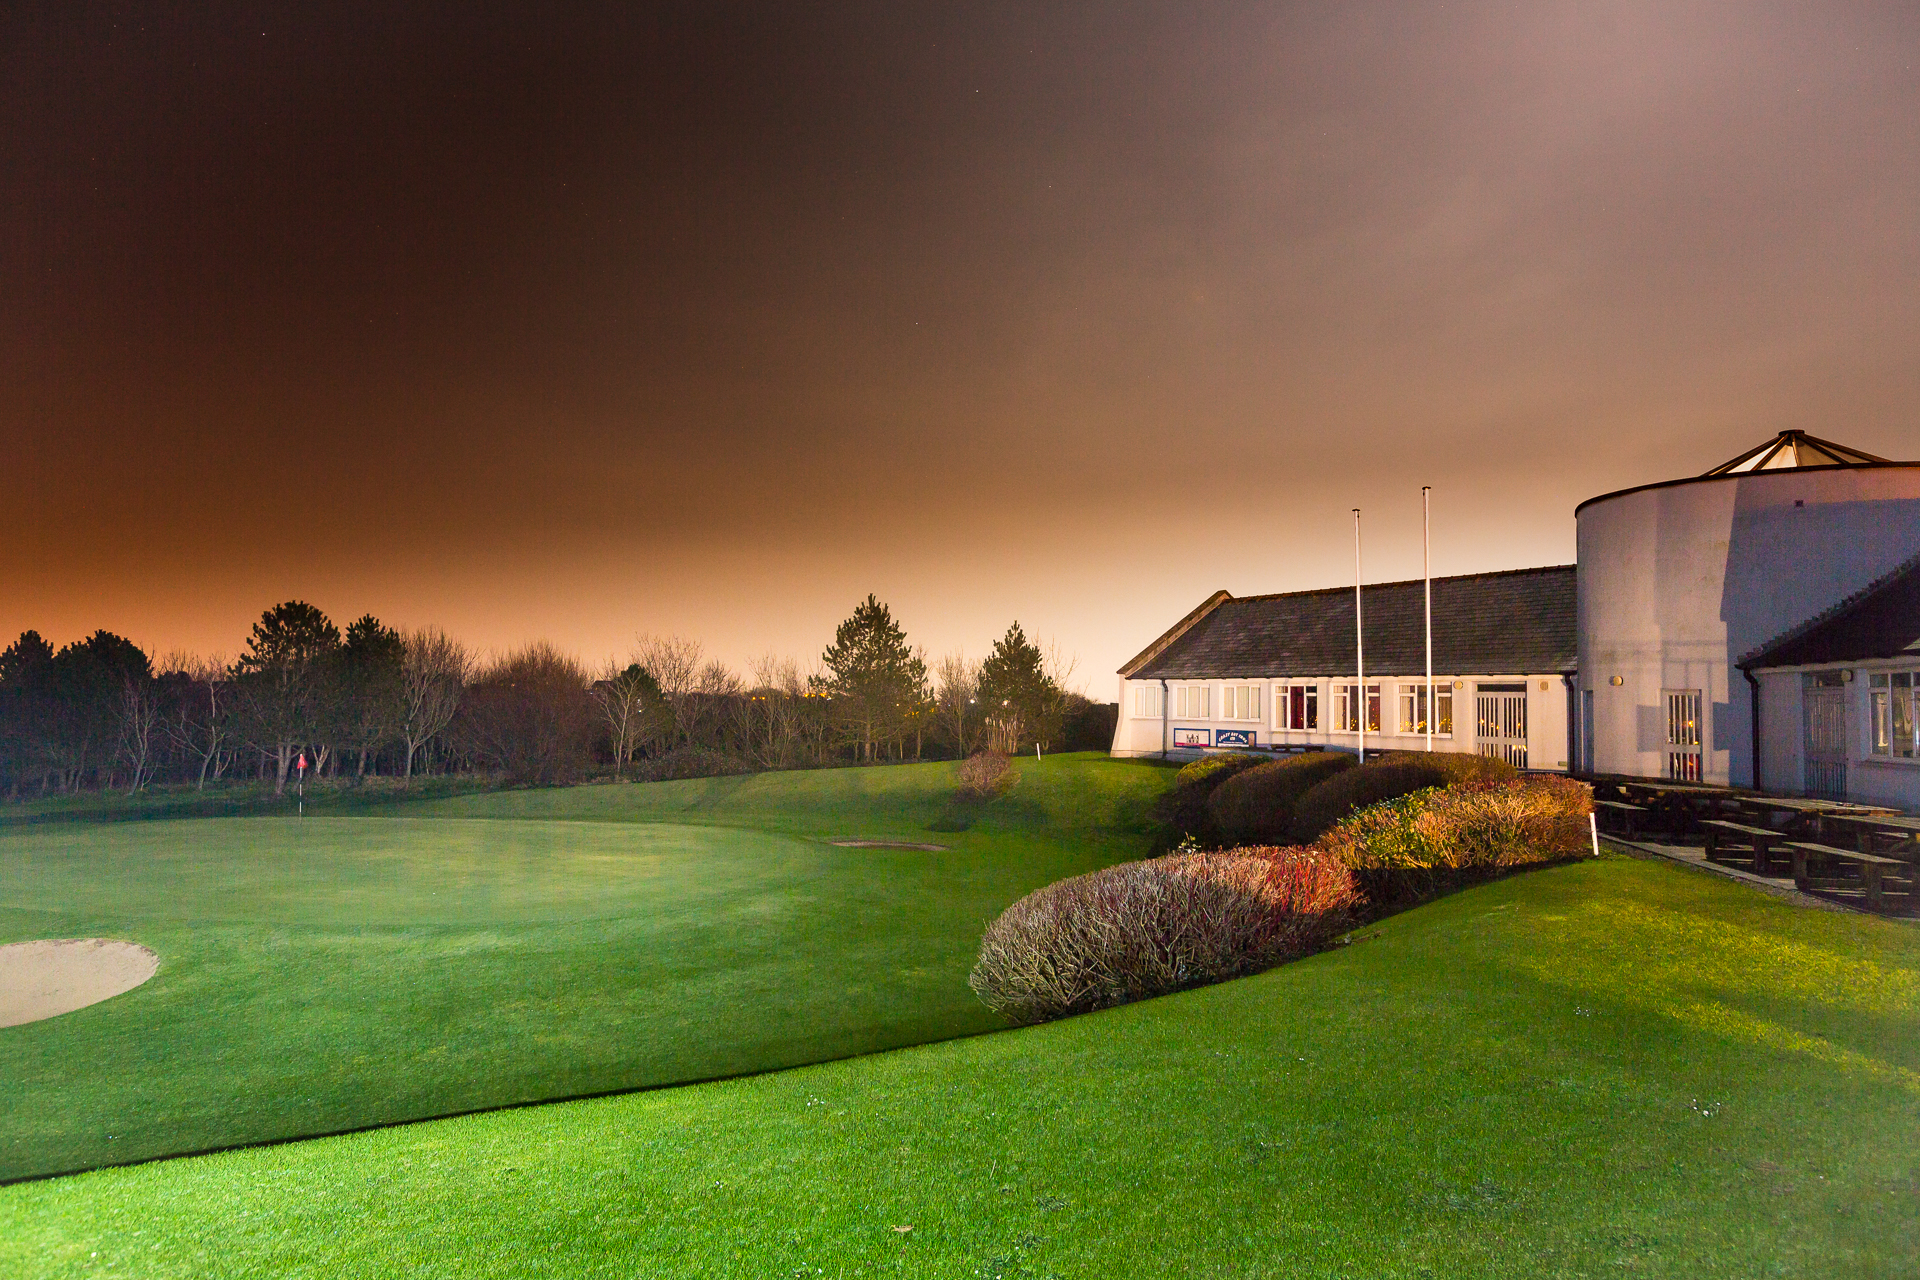 South Pembrokeshire Golf Club - Pembroke Dock